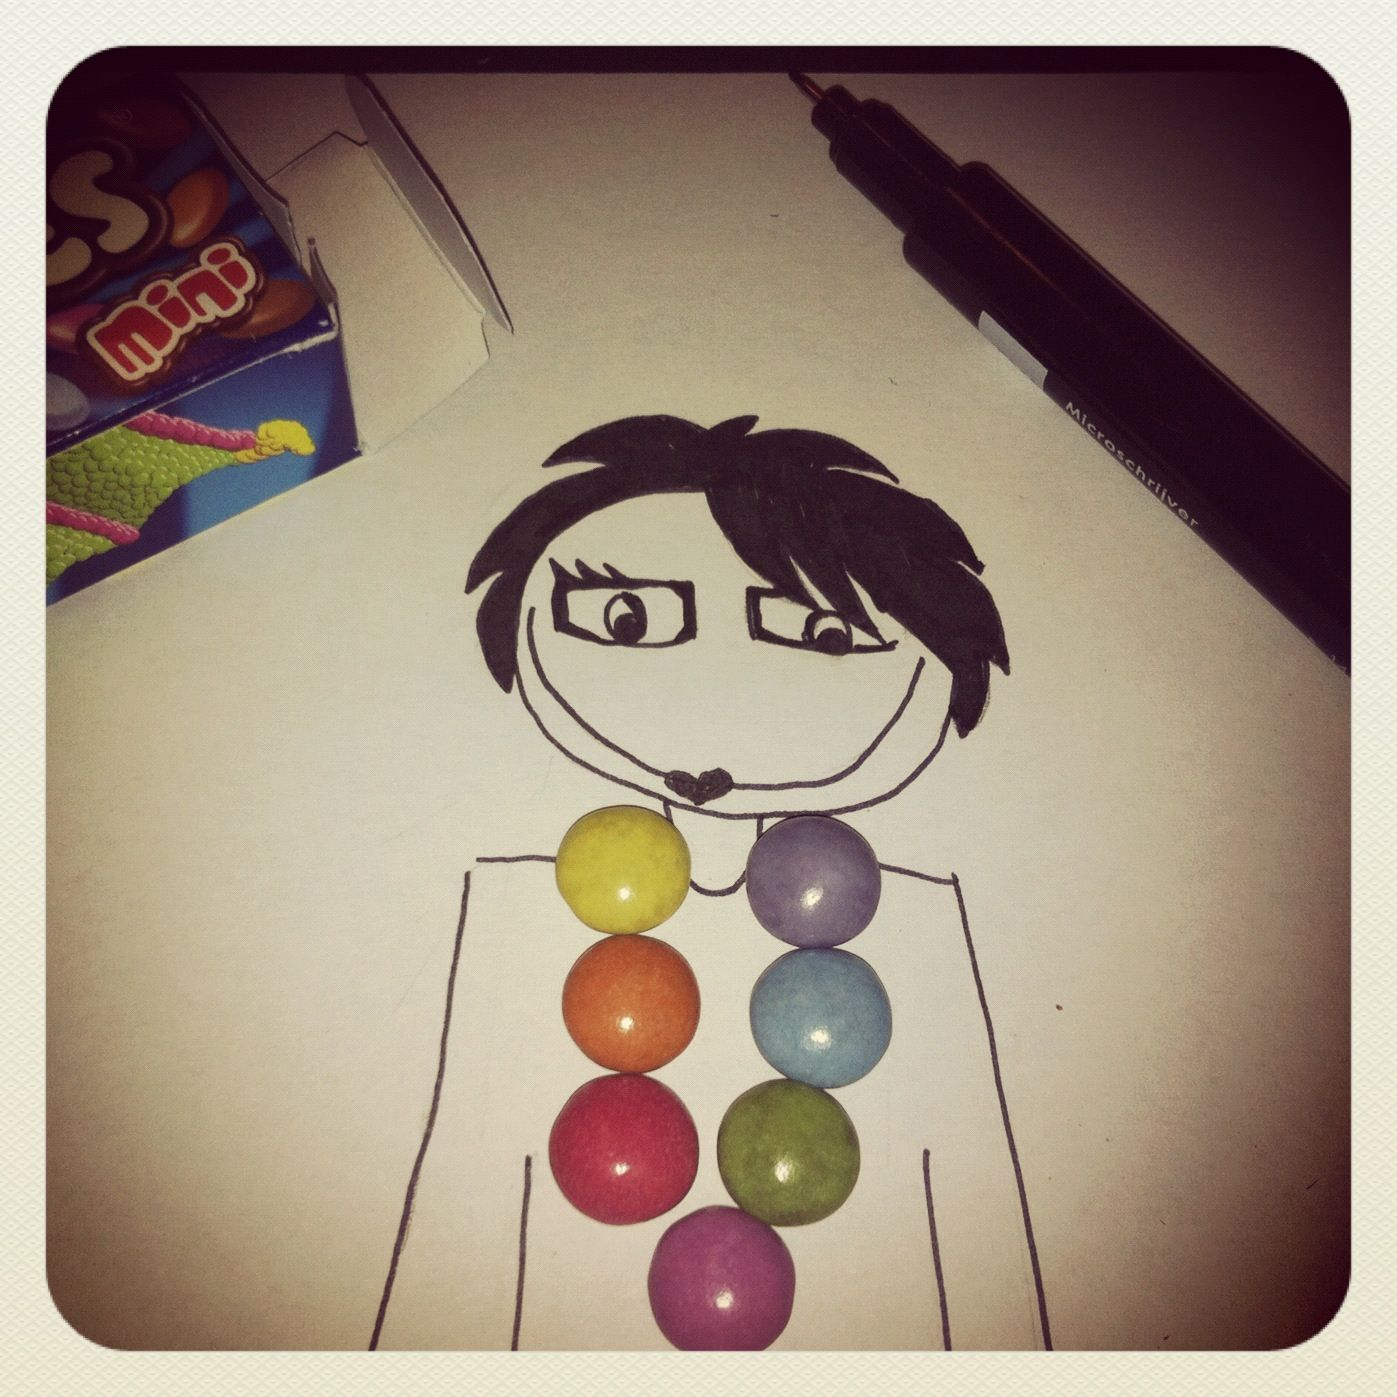 Fun with Smarties7